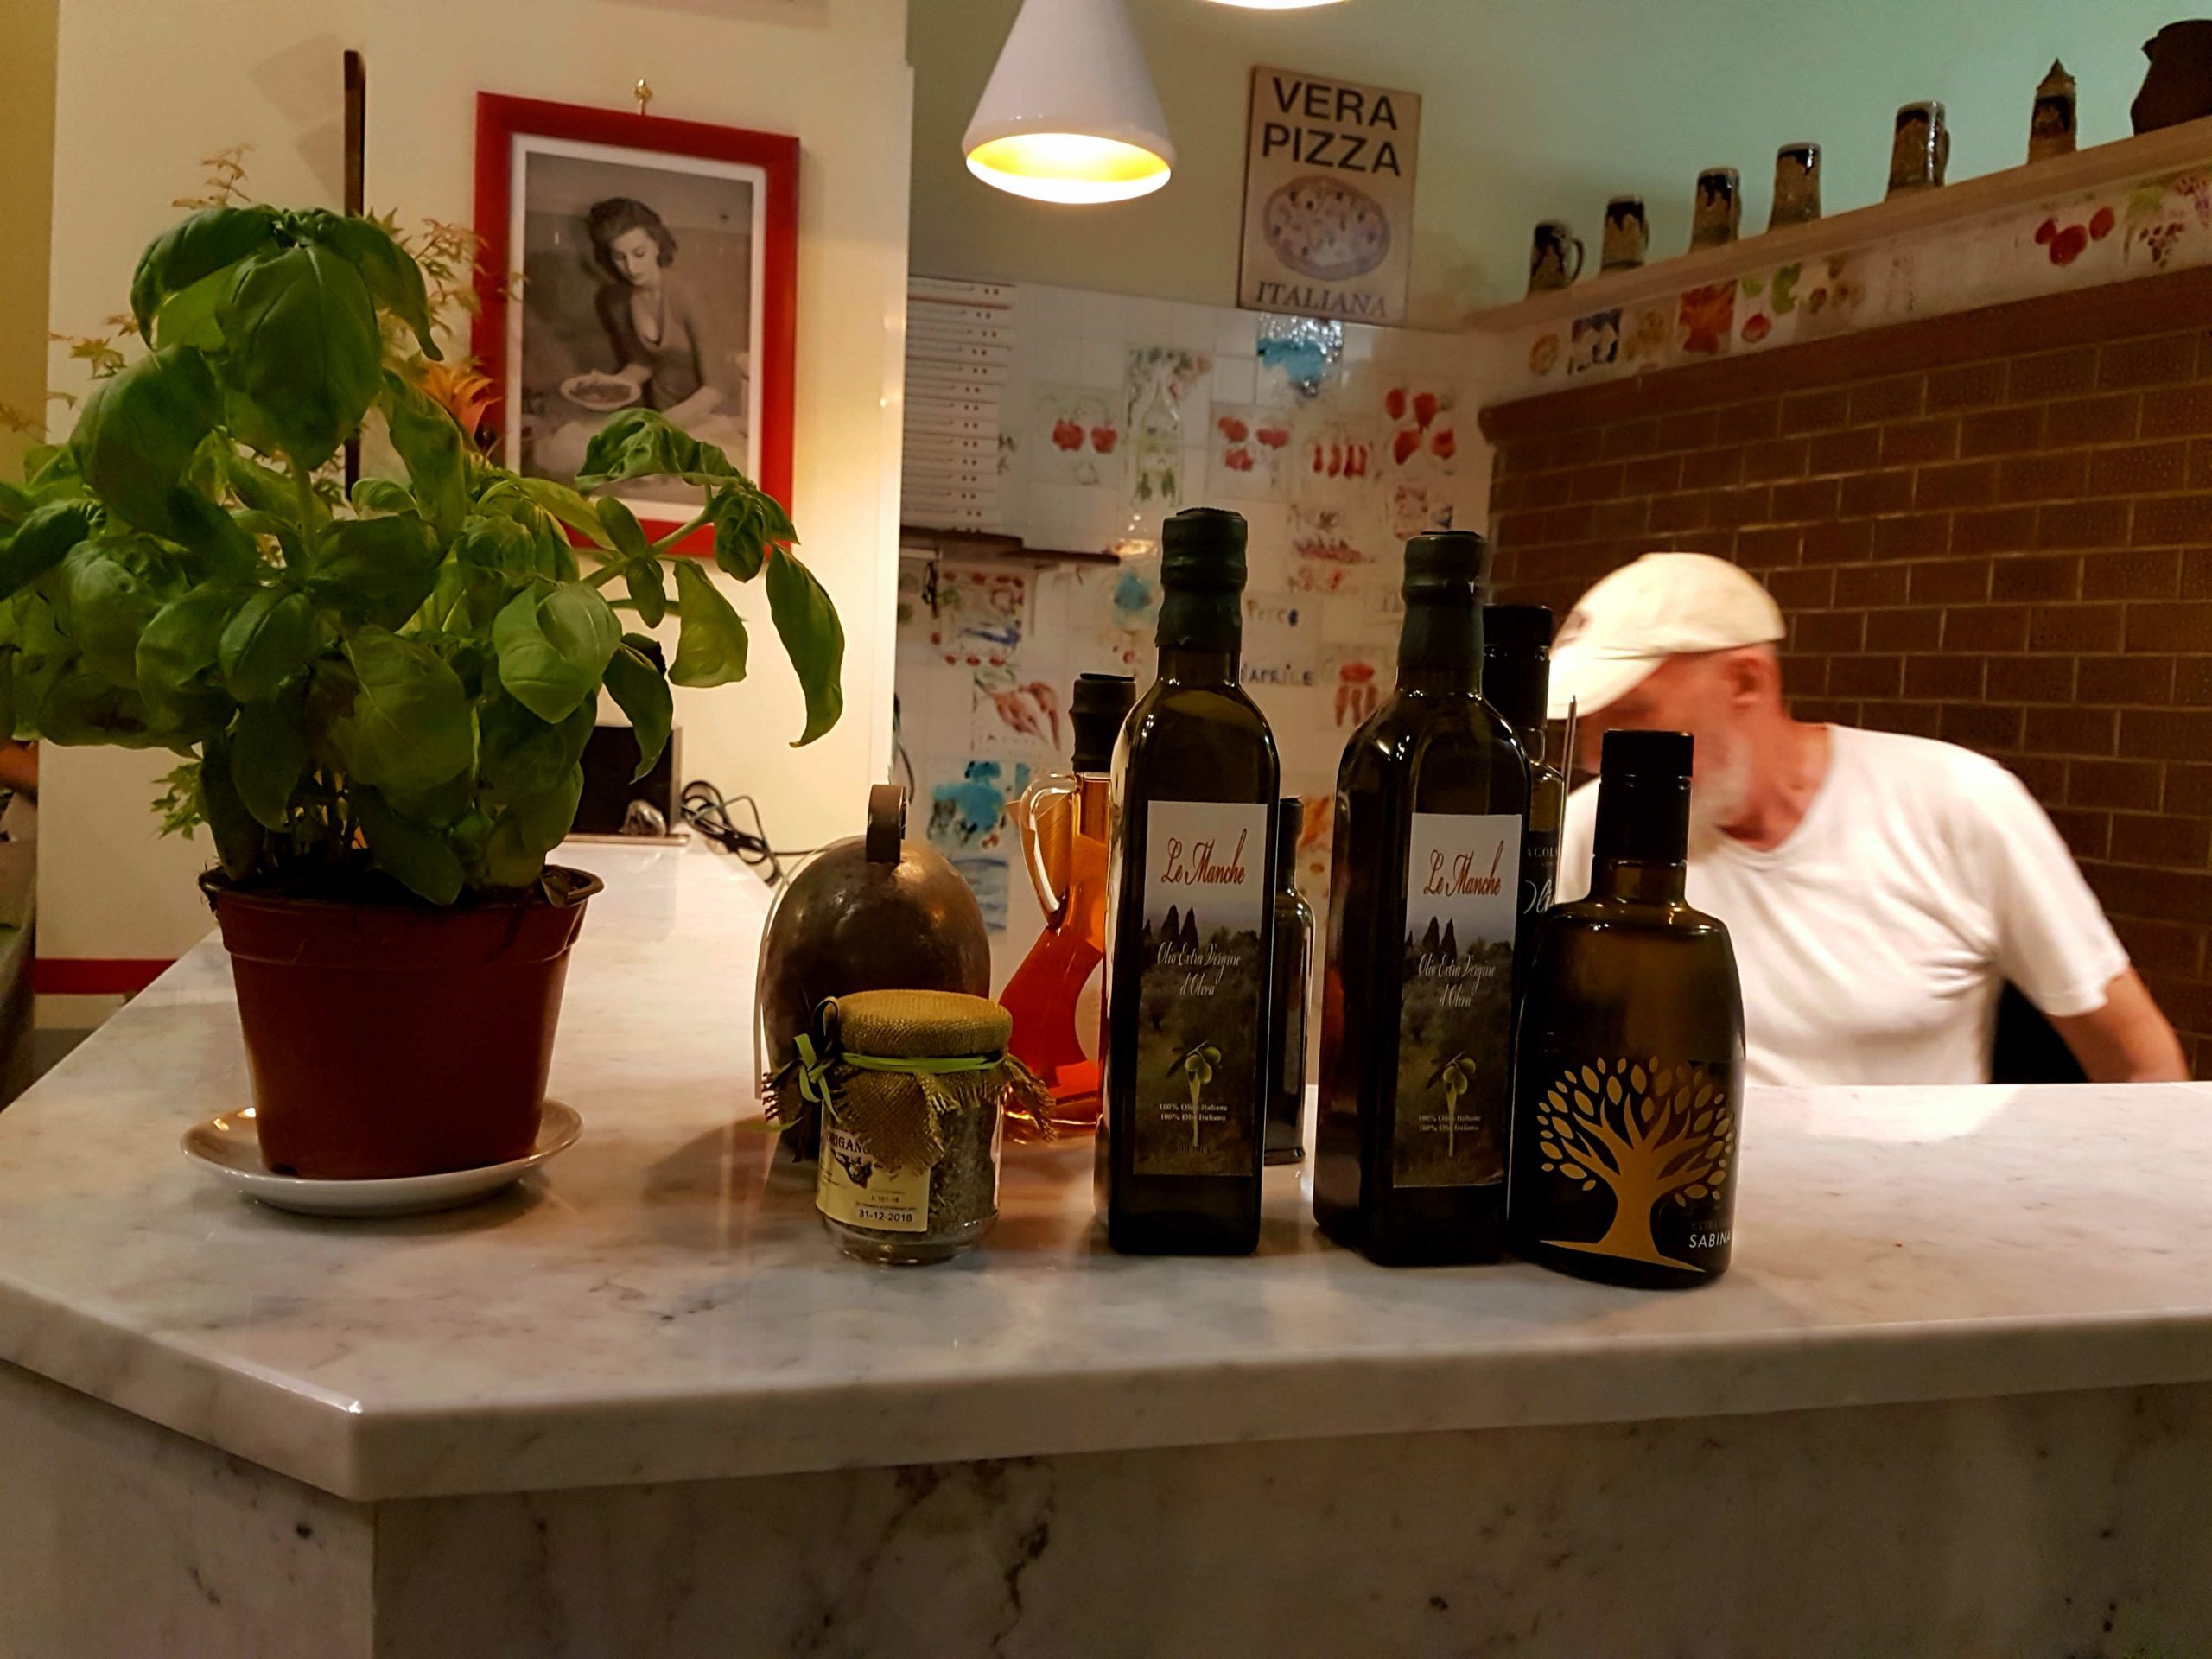 If you're looking for the best restaurant in Trastevere or the best pizza in Rome, let Peppo al Cosimato surprise you with its homely charms, pizza and fish.